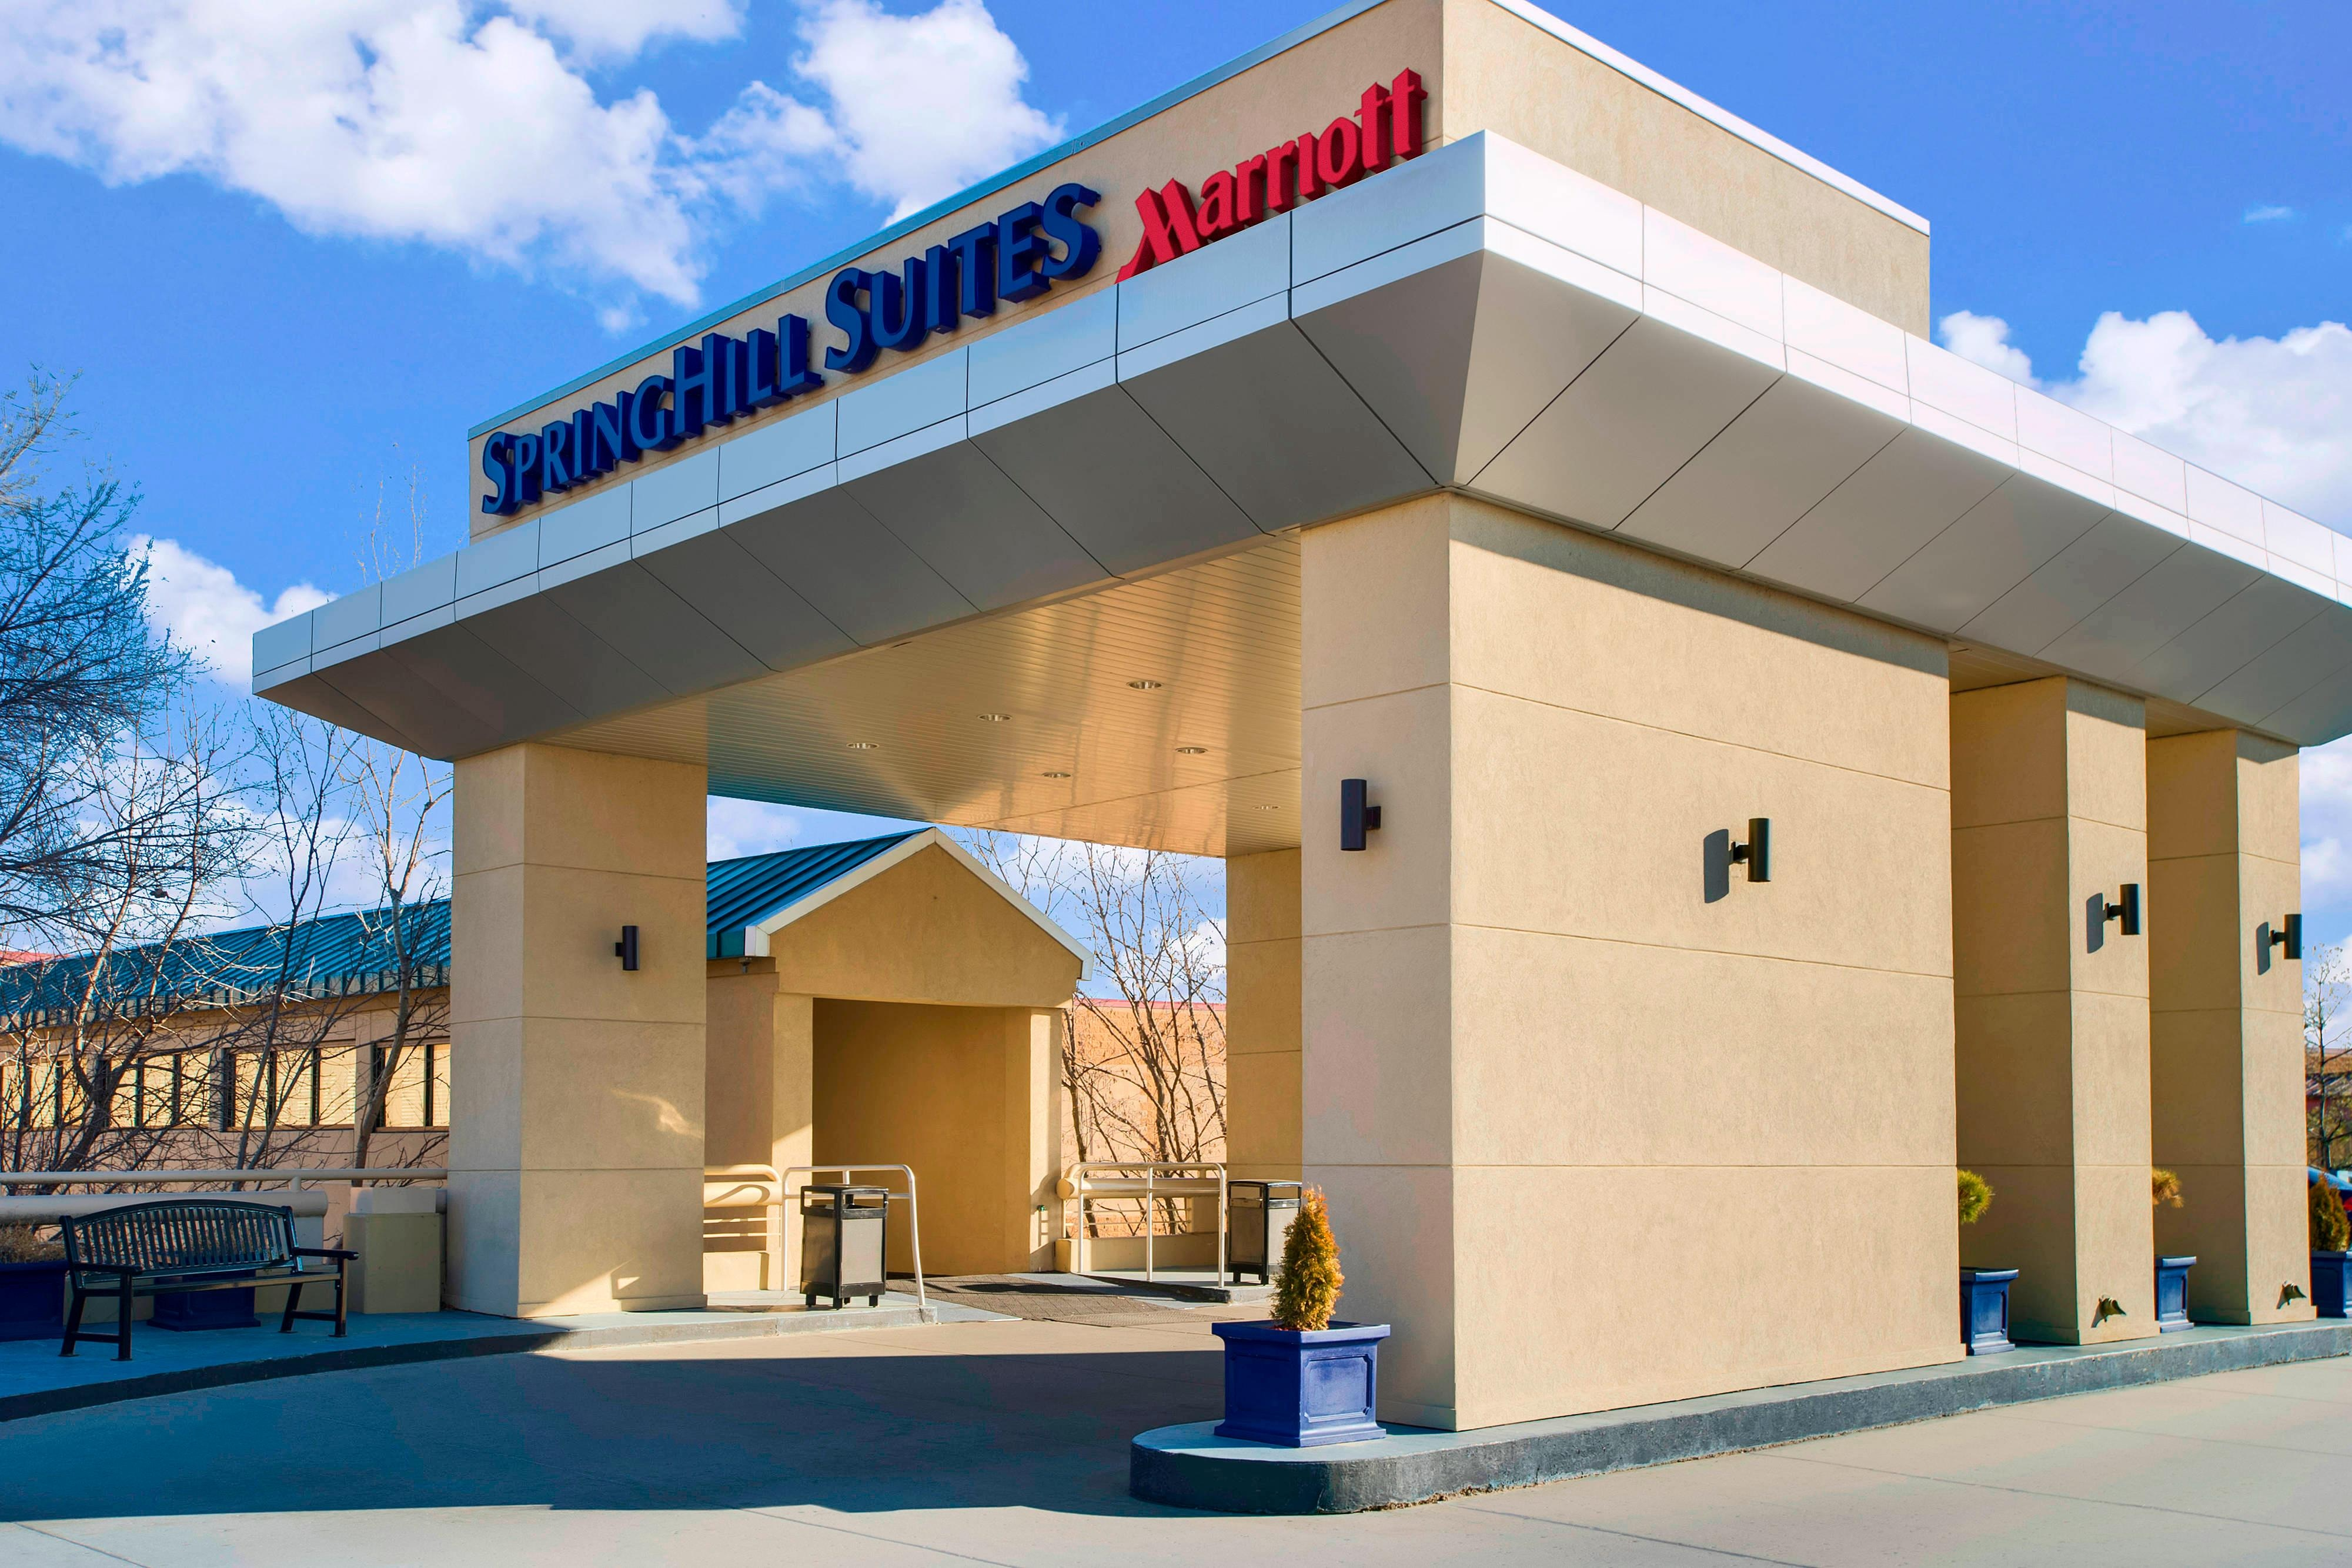 Springhill Suites Lawrence Exterior